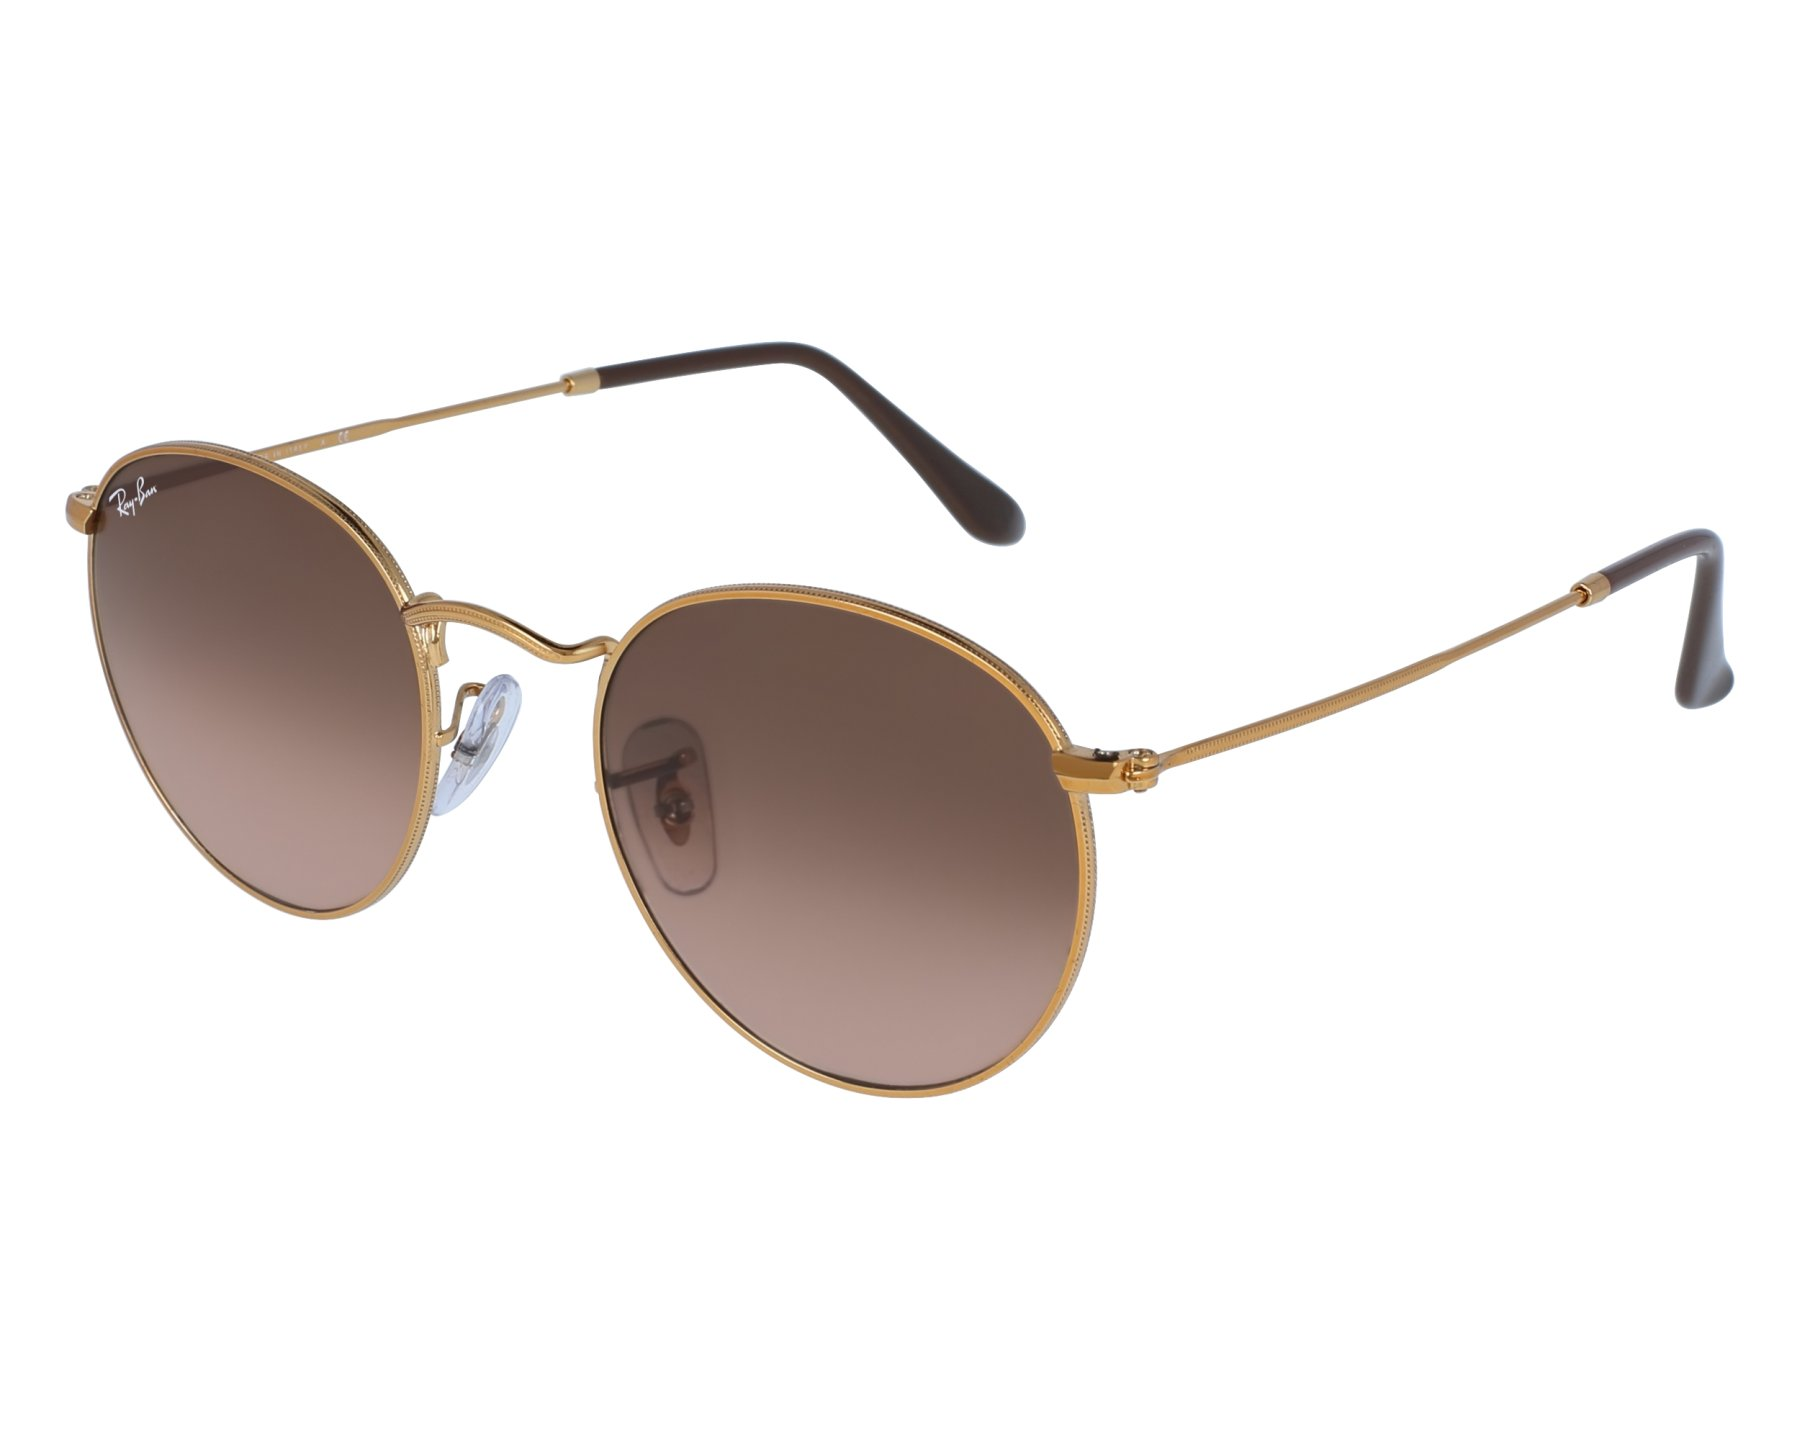 3c56702de2 Sunglasses Ray-Ban RB-3447 9001 A5 50-21 Gold front view